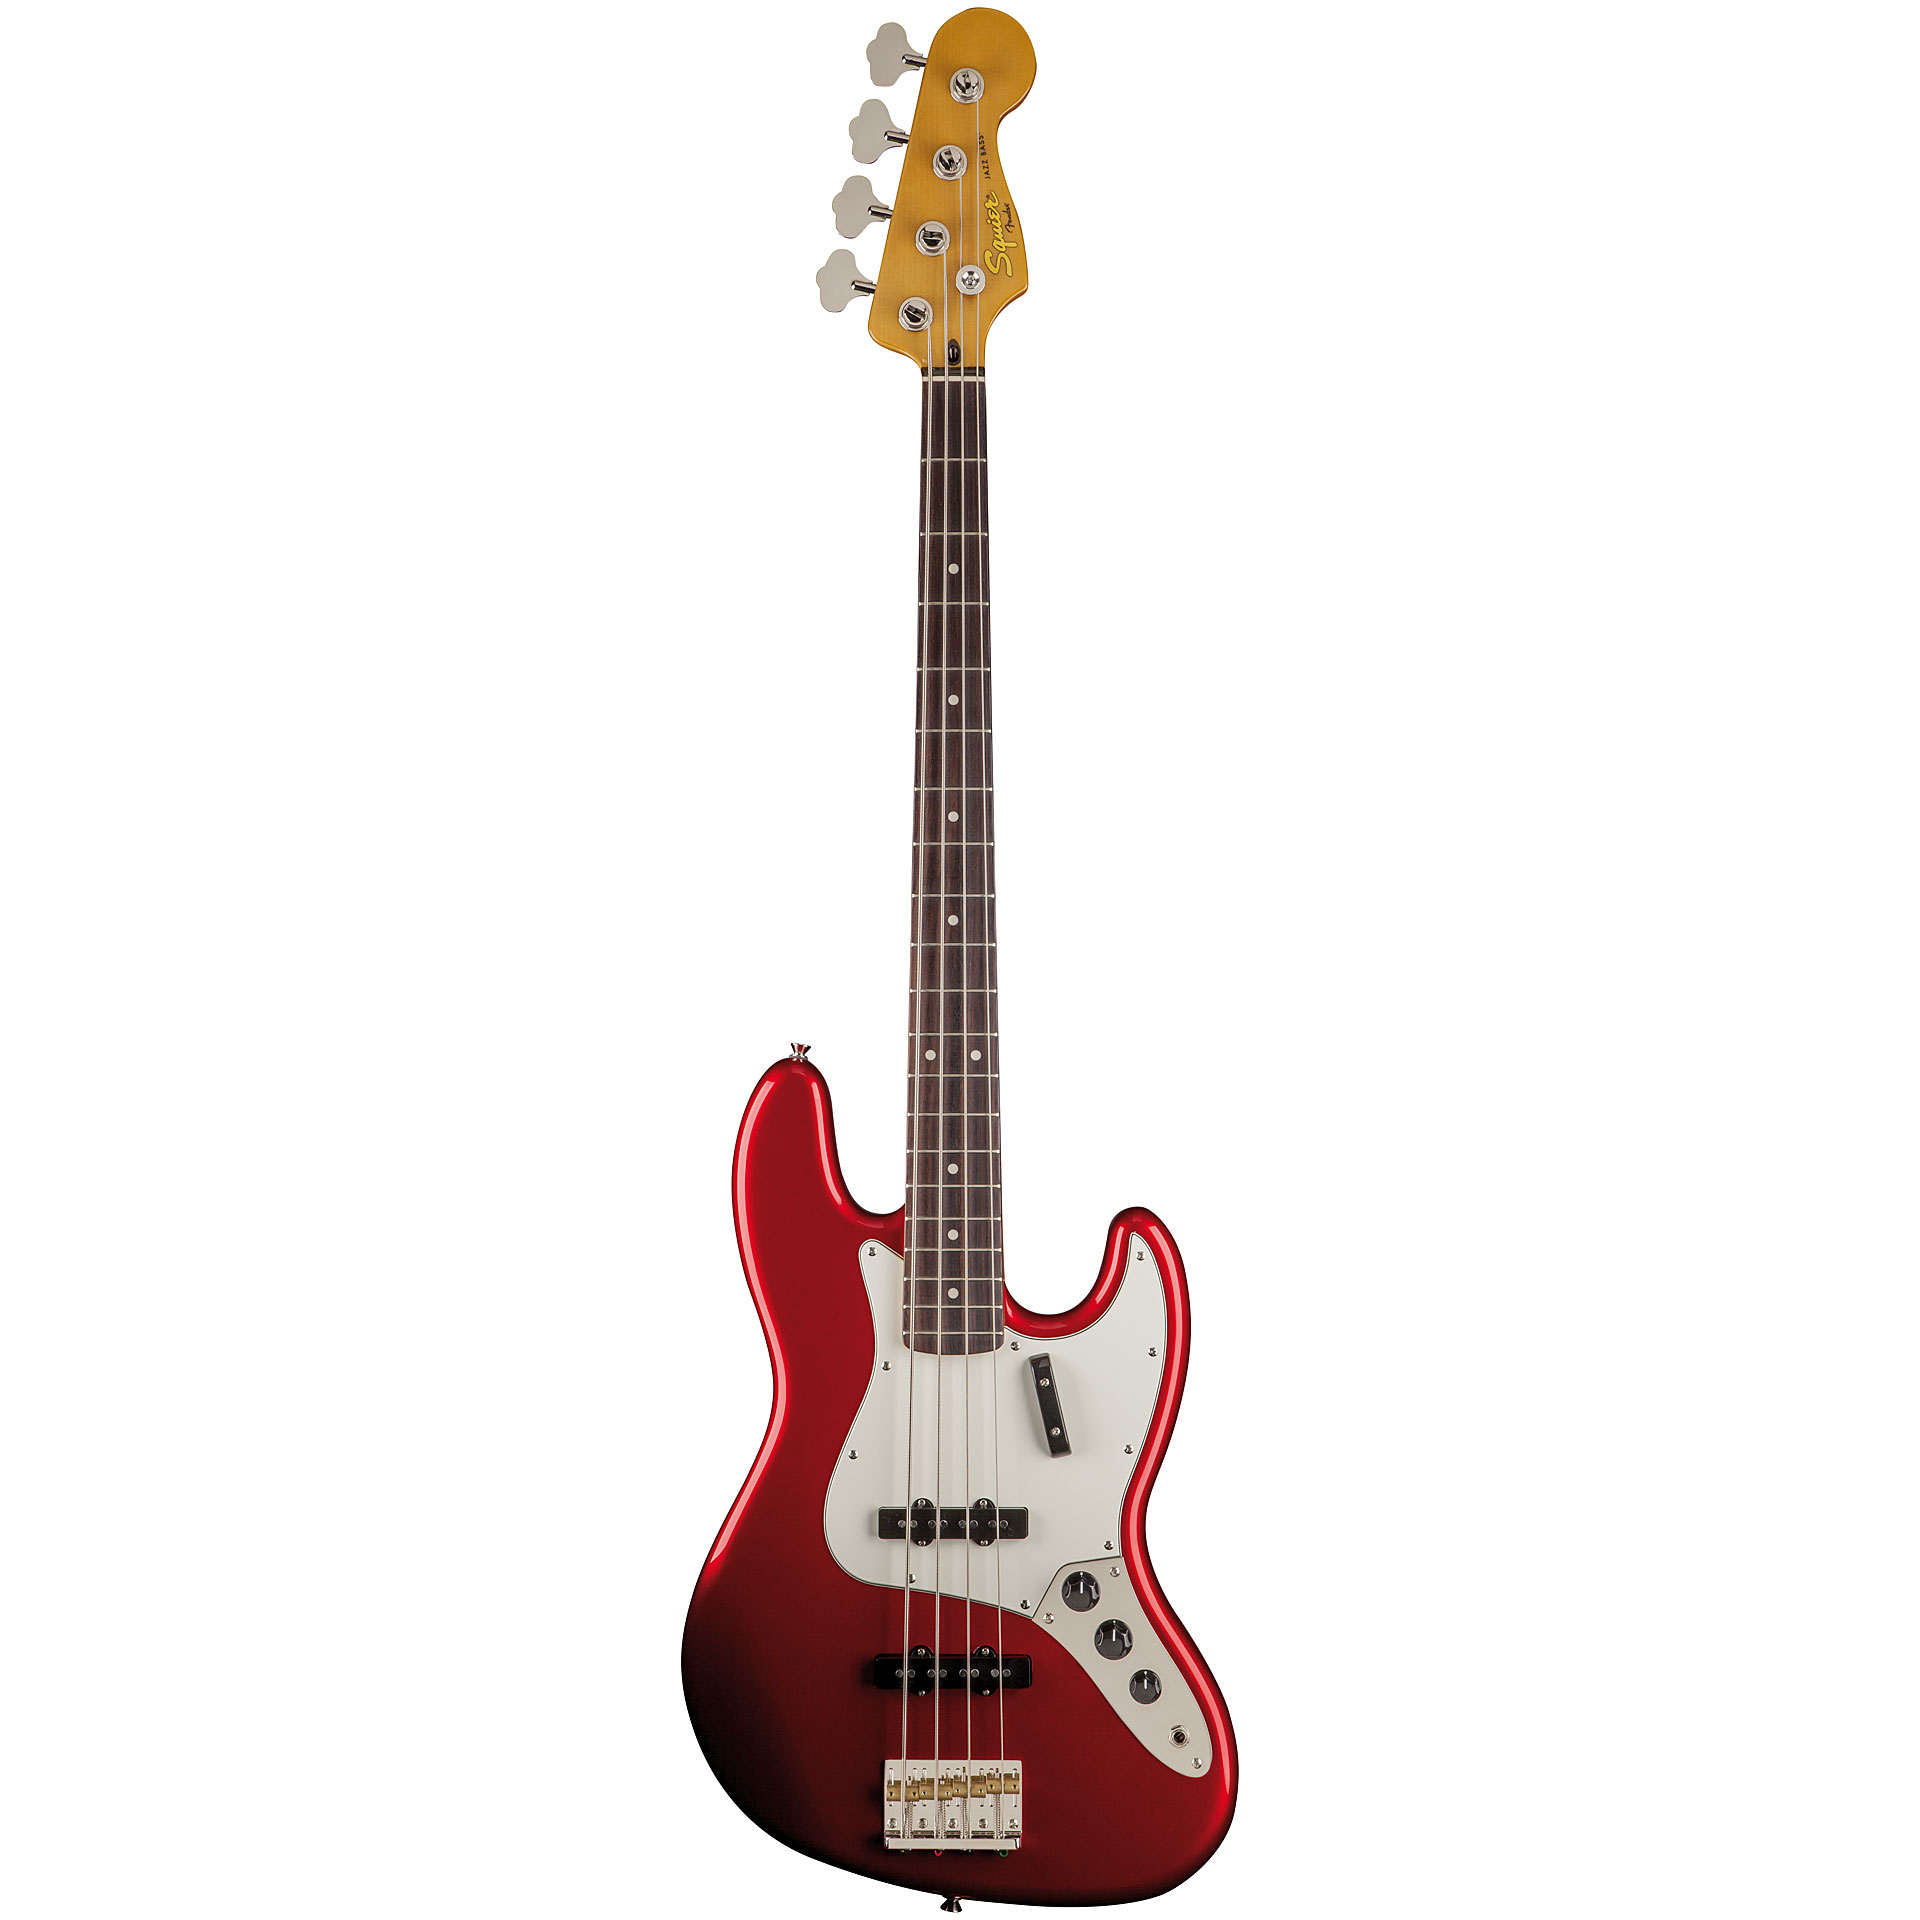 squier classic vibe  u0026 39 60s jazz bass car  u00ab electric bass guitar